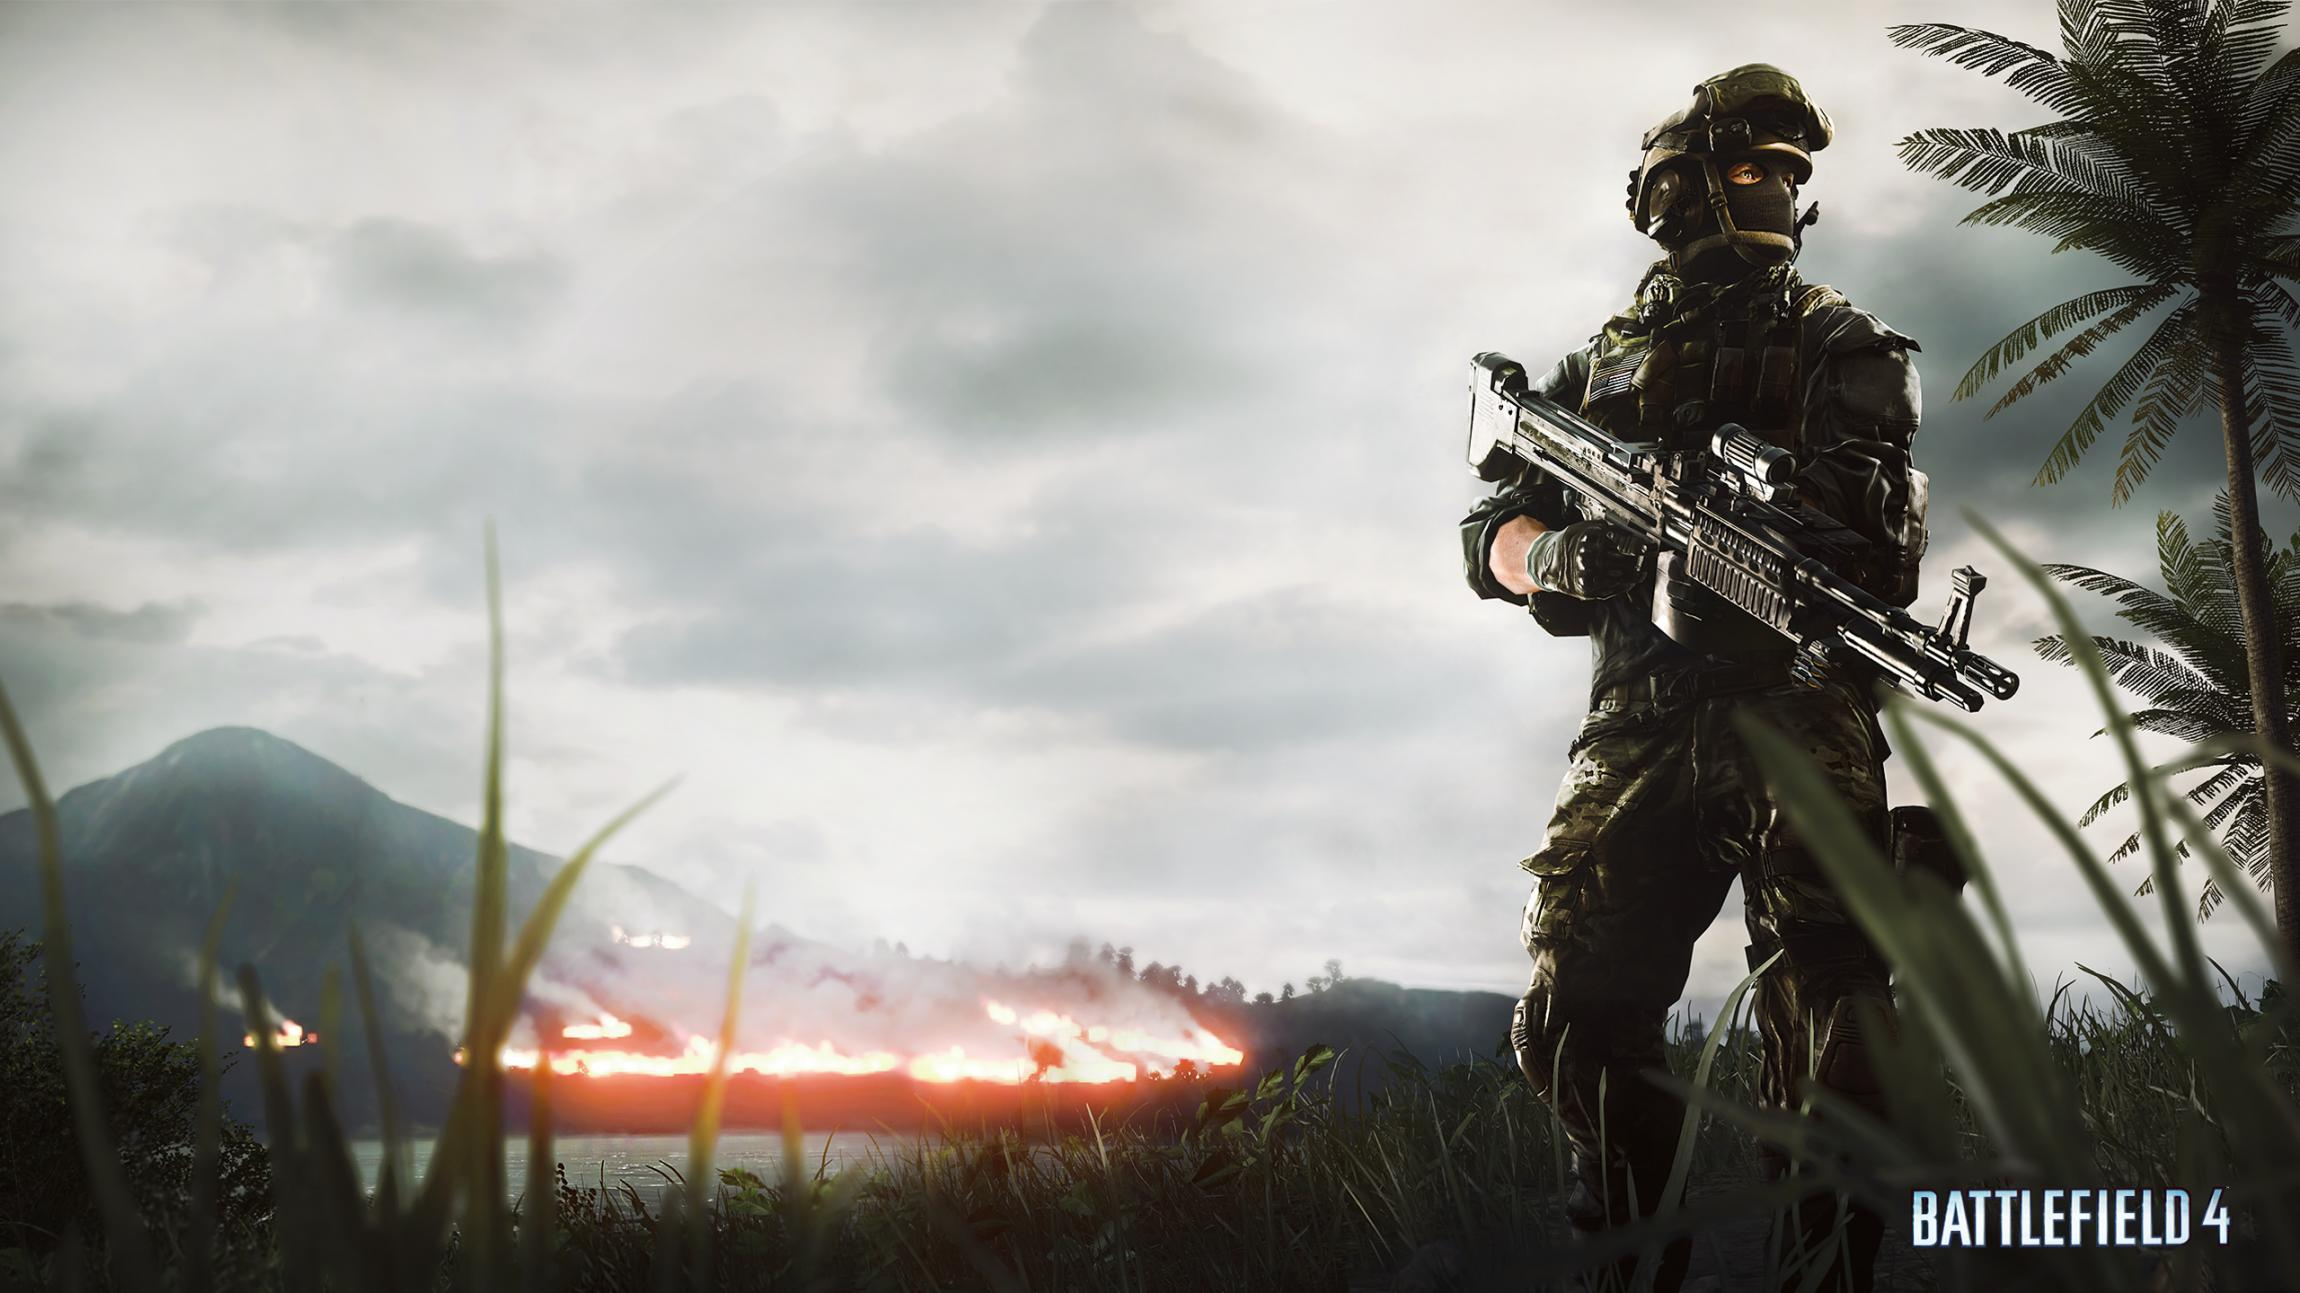 Battlefield 4 Support Wallpaper   2560x1440   Battlefield Informer 2300x1293